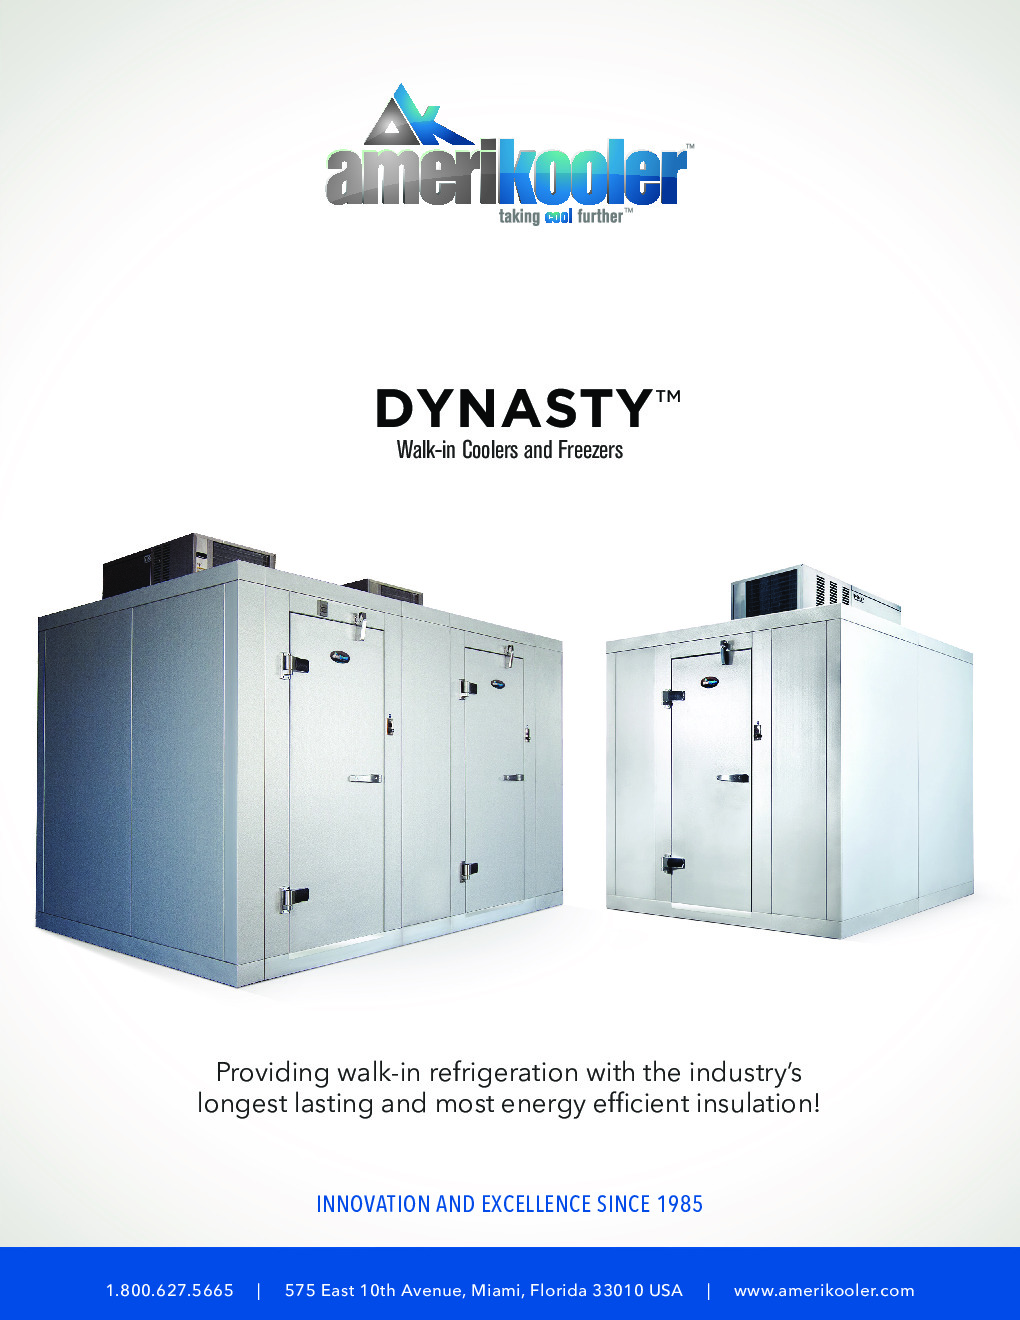 AmeriKooler DW101877F-9/9-SC 10' X 18' Walk-In Cooler, 9' L Cooler with Floor and 9' L Freezer, Self Contained